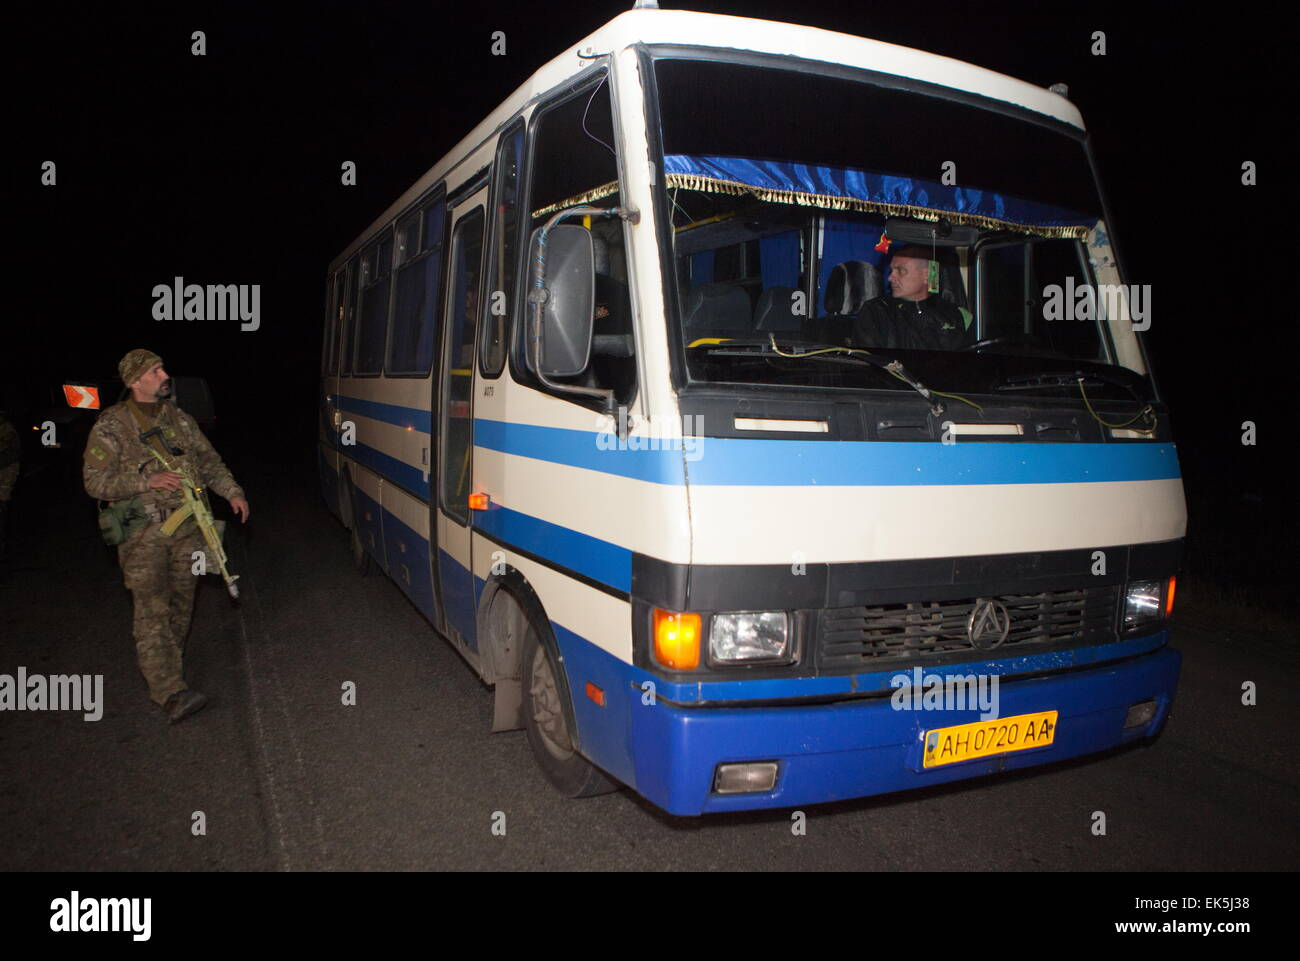 Donetsk Region, Ukraine. 6th Apr, 2015. A bus carrying captured Ukrainian security officials during a handover ceremony - Stock Image